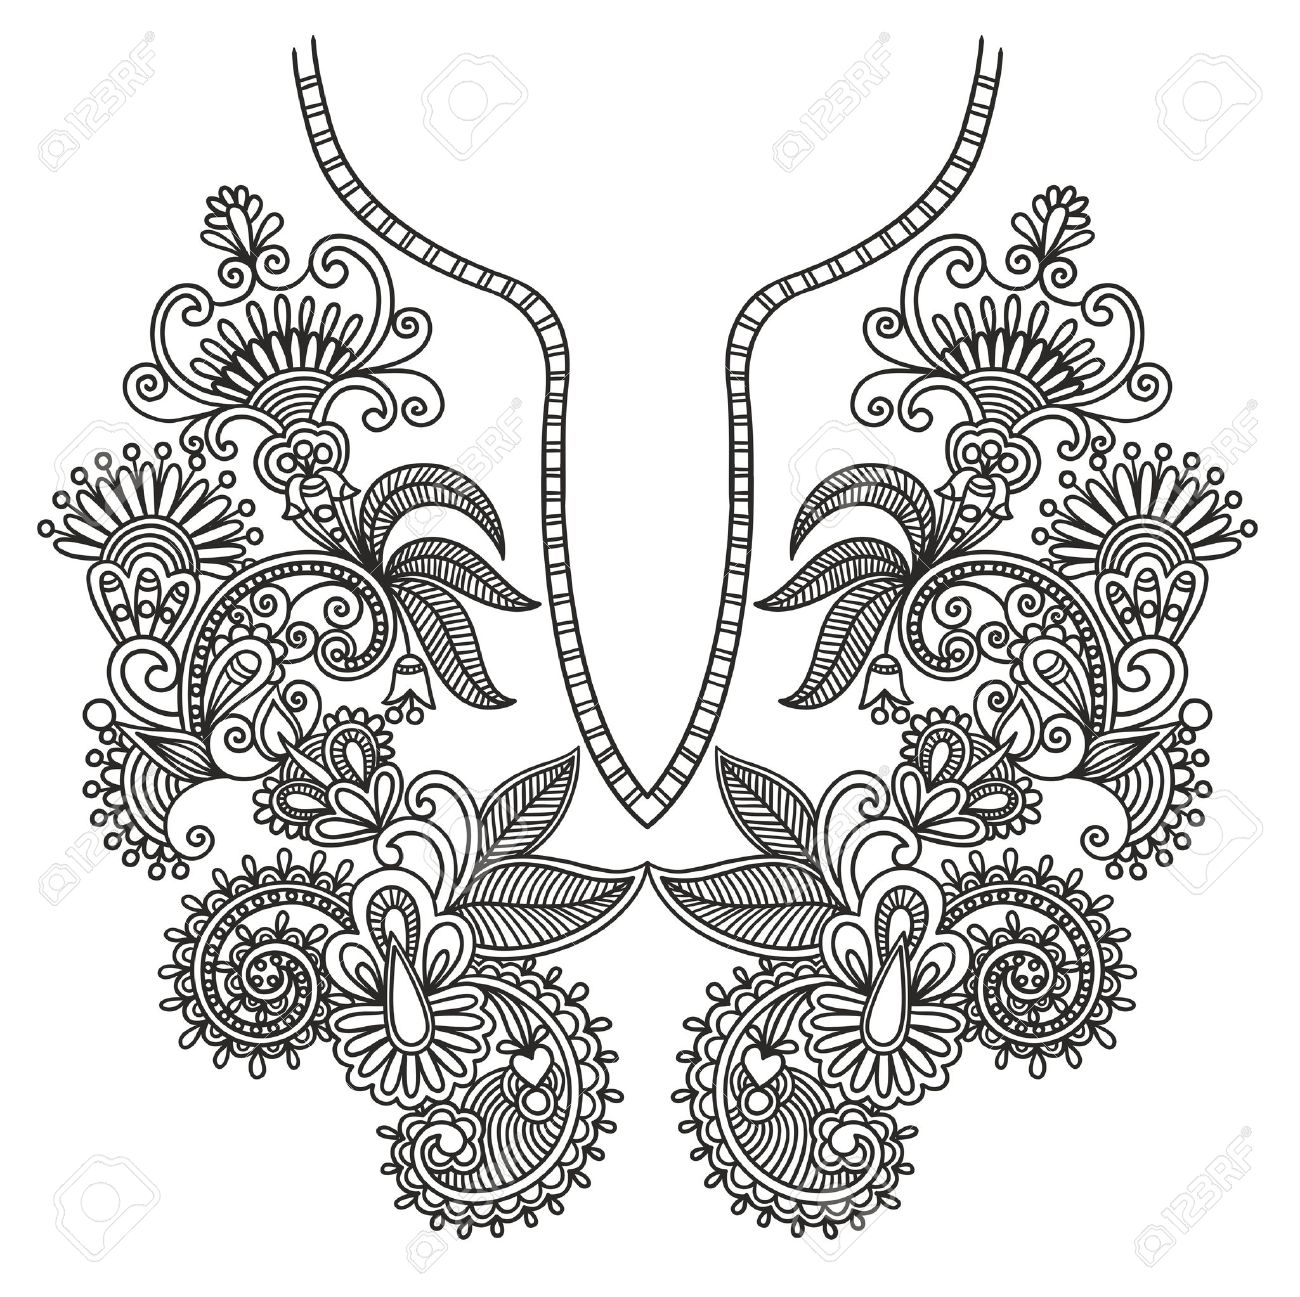 47,546 Embroidery Pattern Stock Vector Illustration And Royalty.